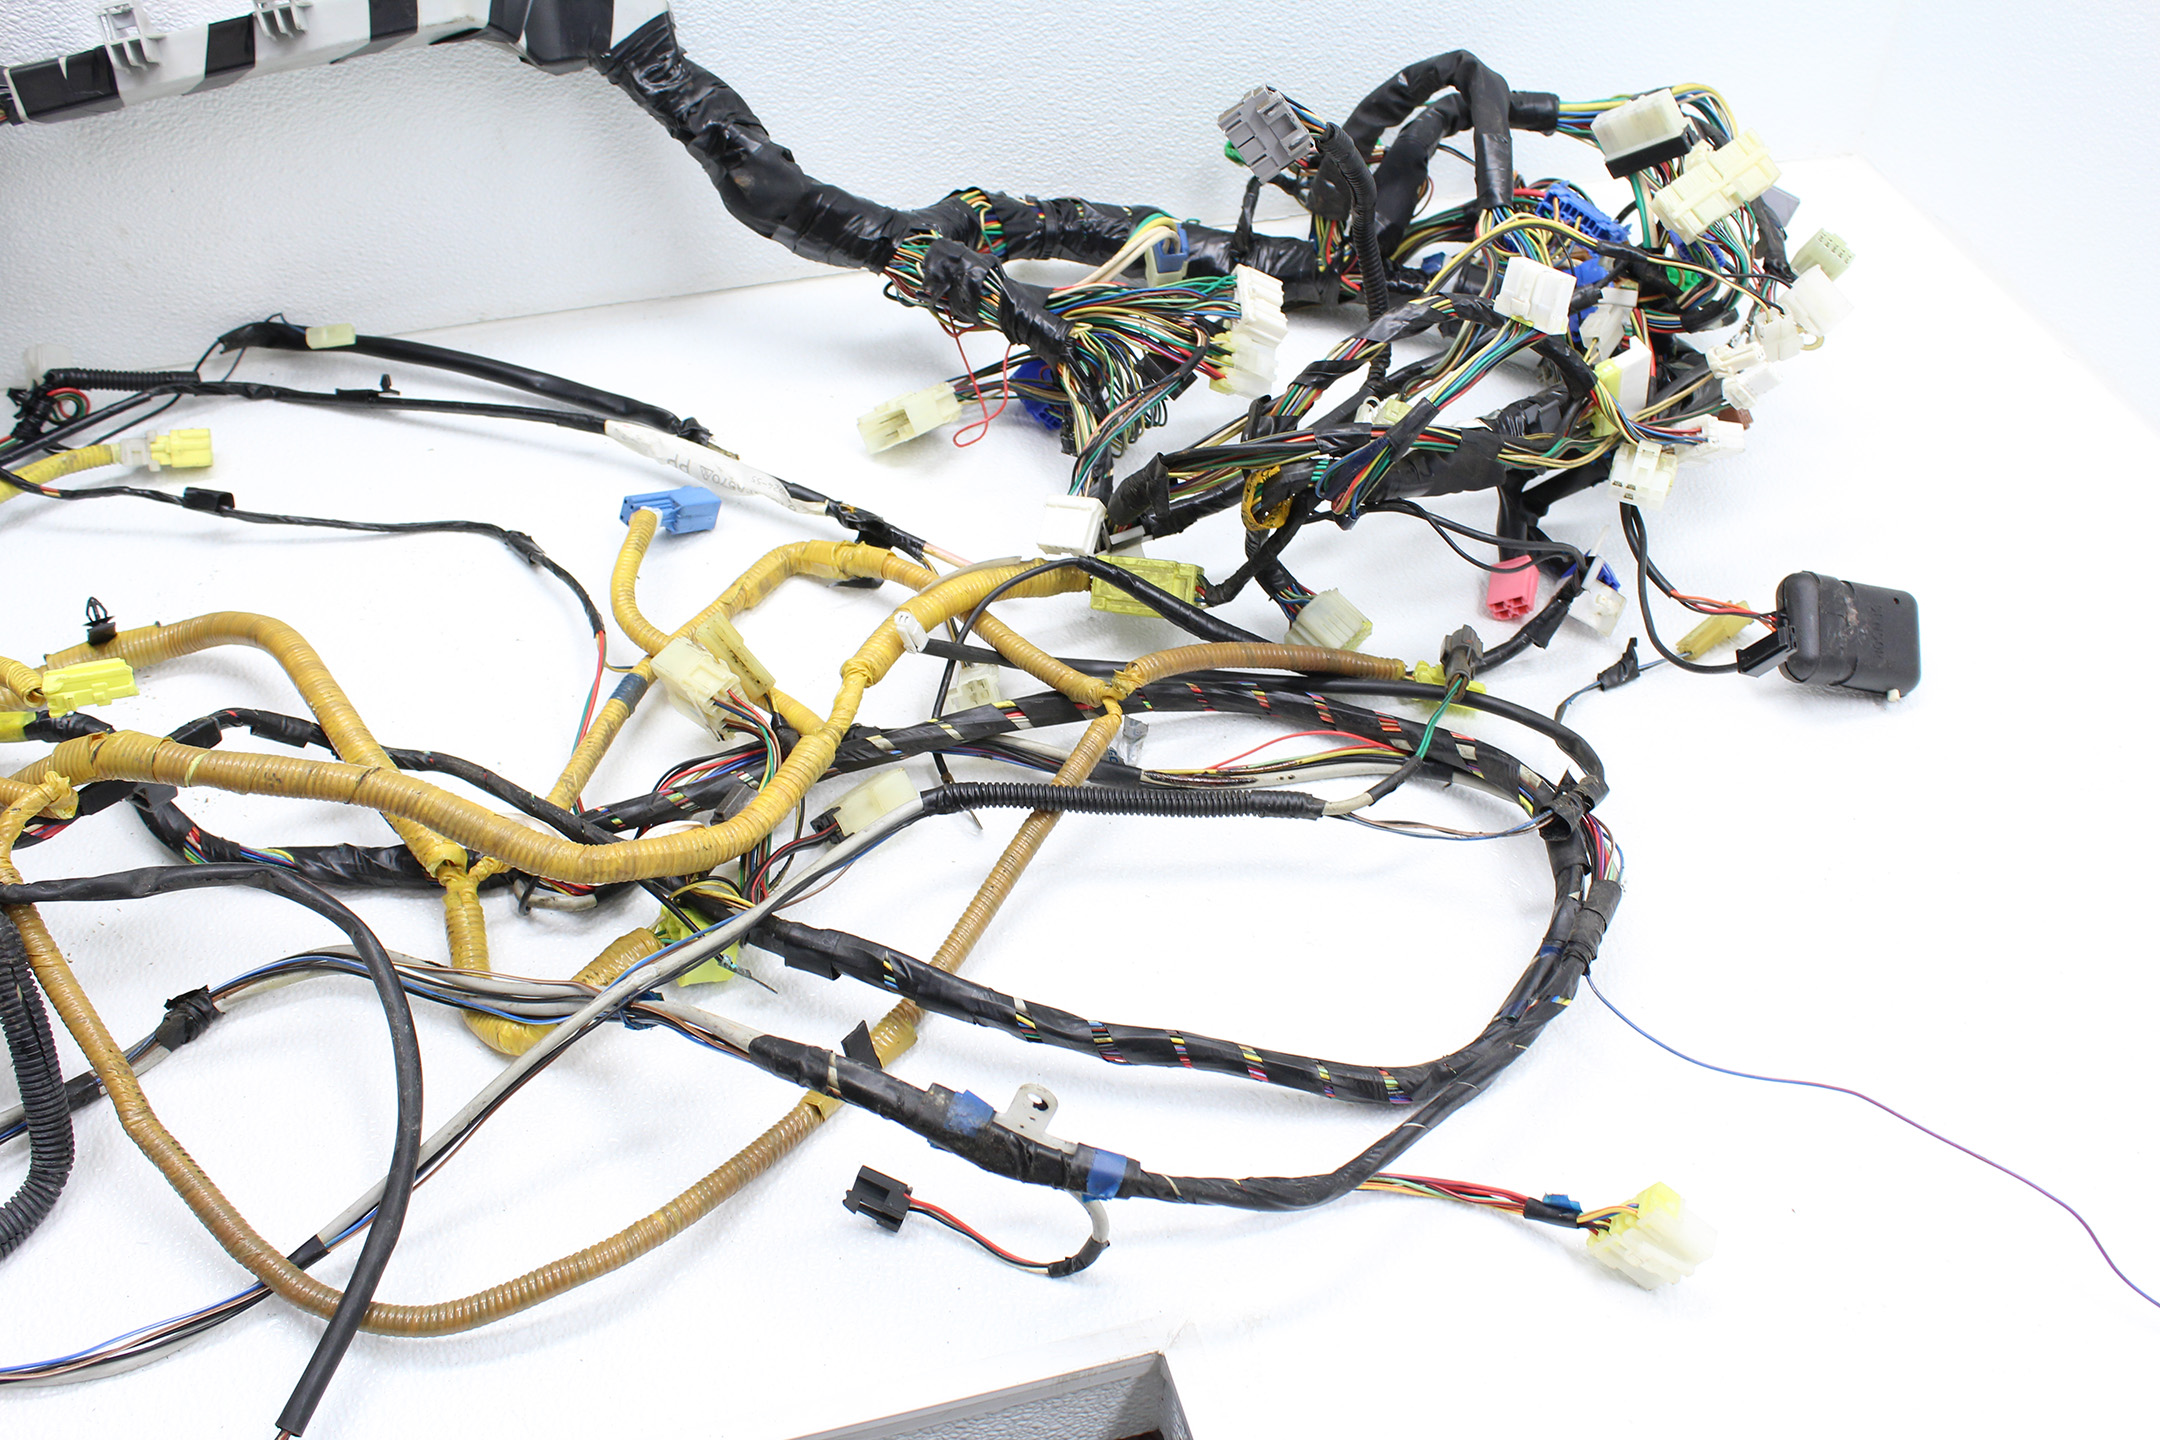 1998 2001 Subaru Impreza 2 5 Rs Bulk Head Wiring Harness 5mt (under Subaru  Home Link Wiring Harness Subaru Wiring Harness